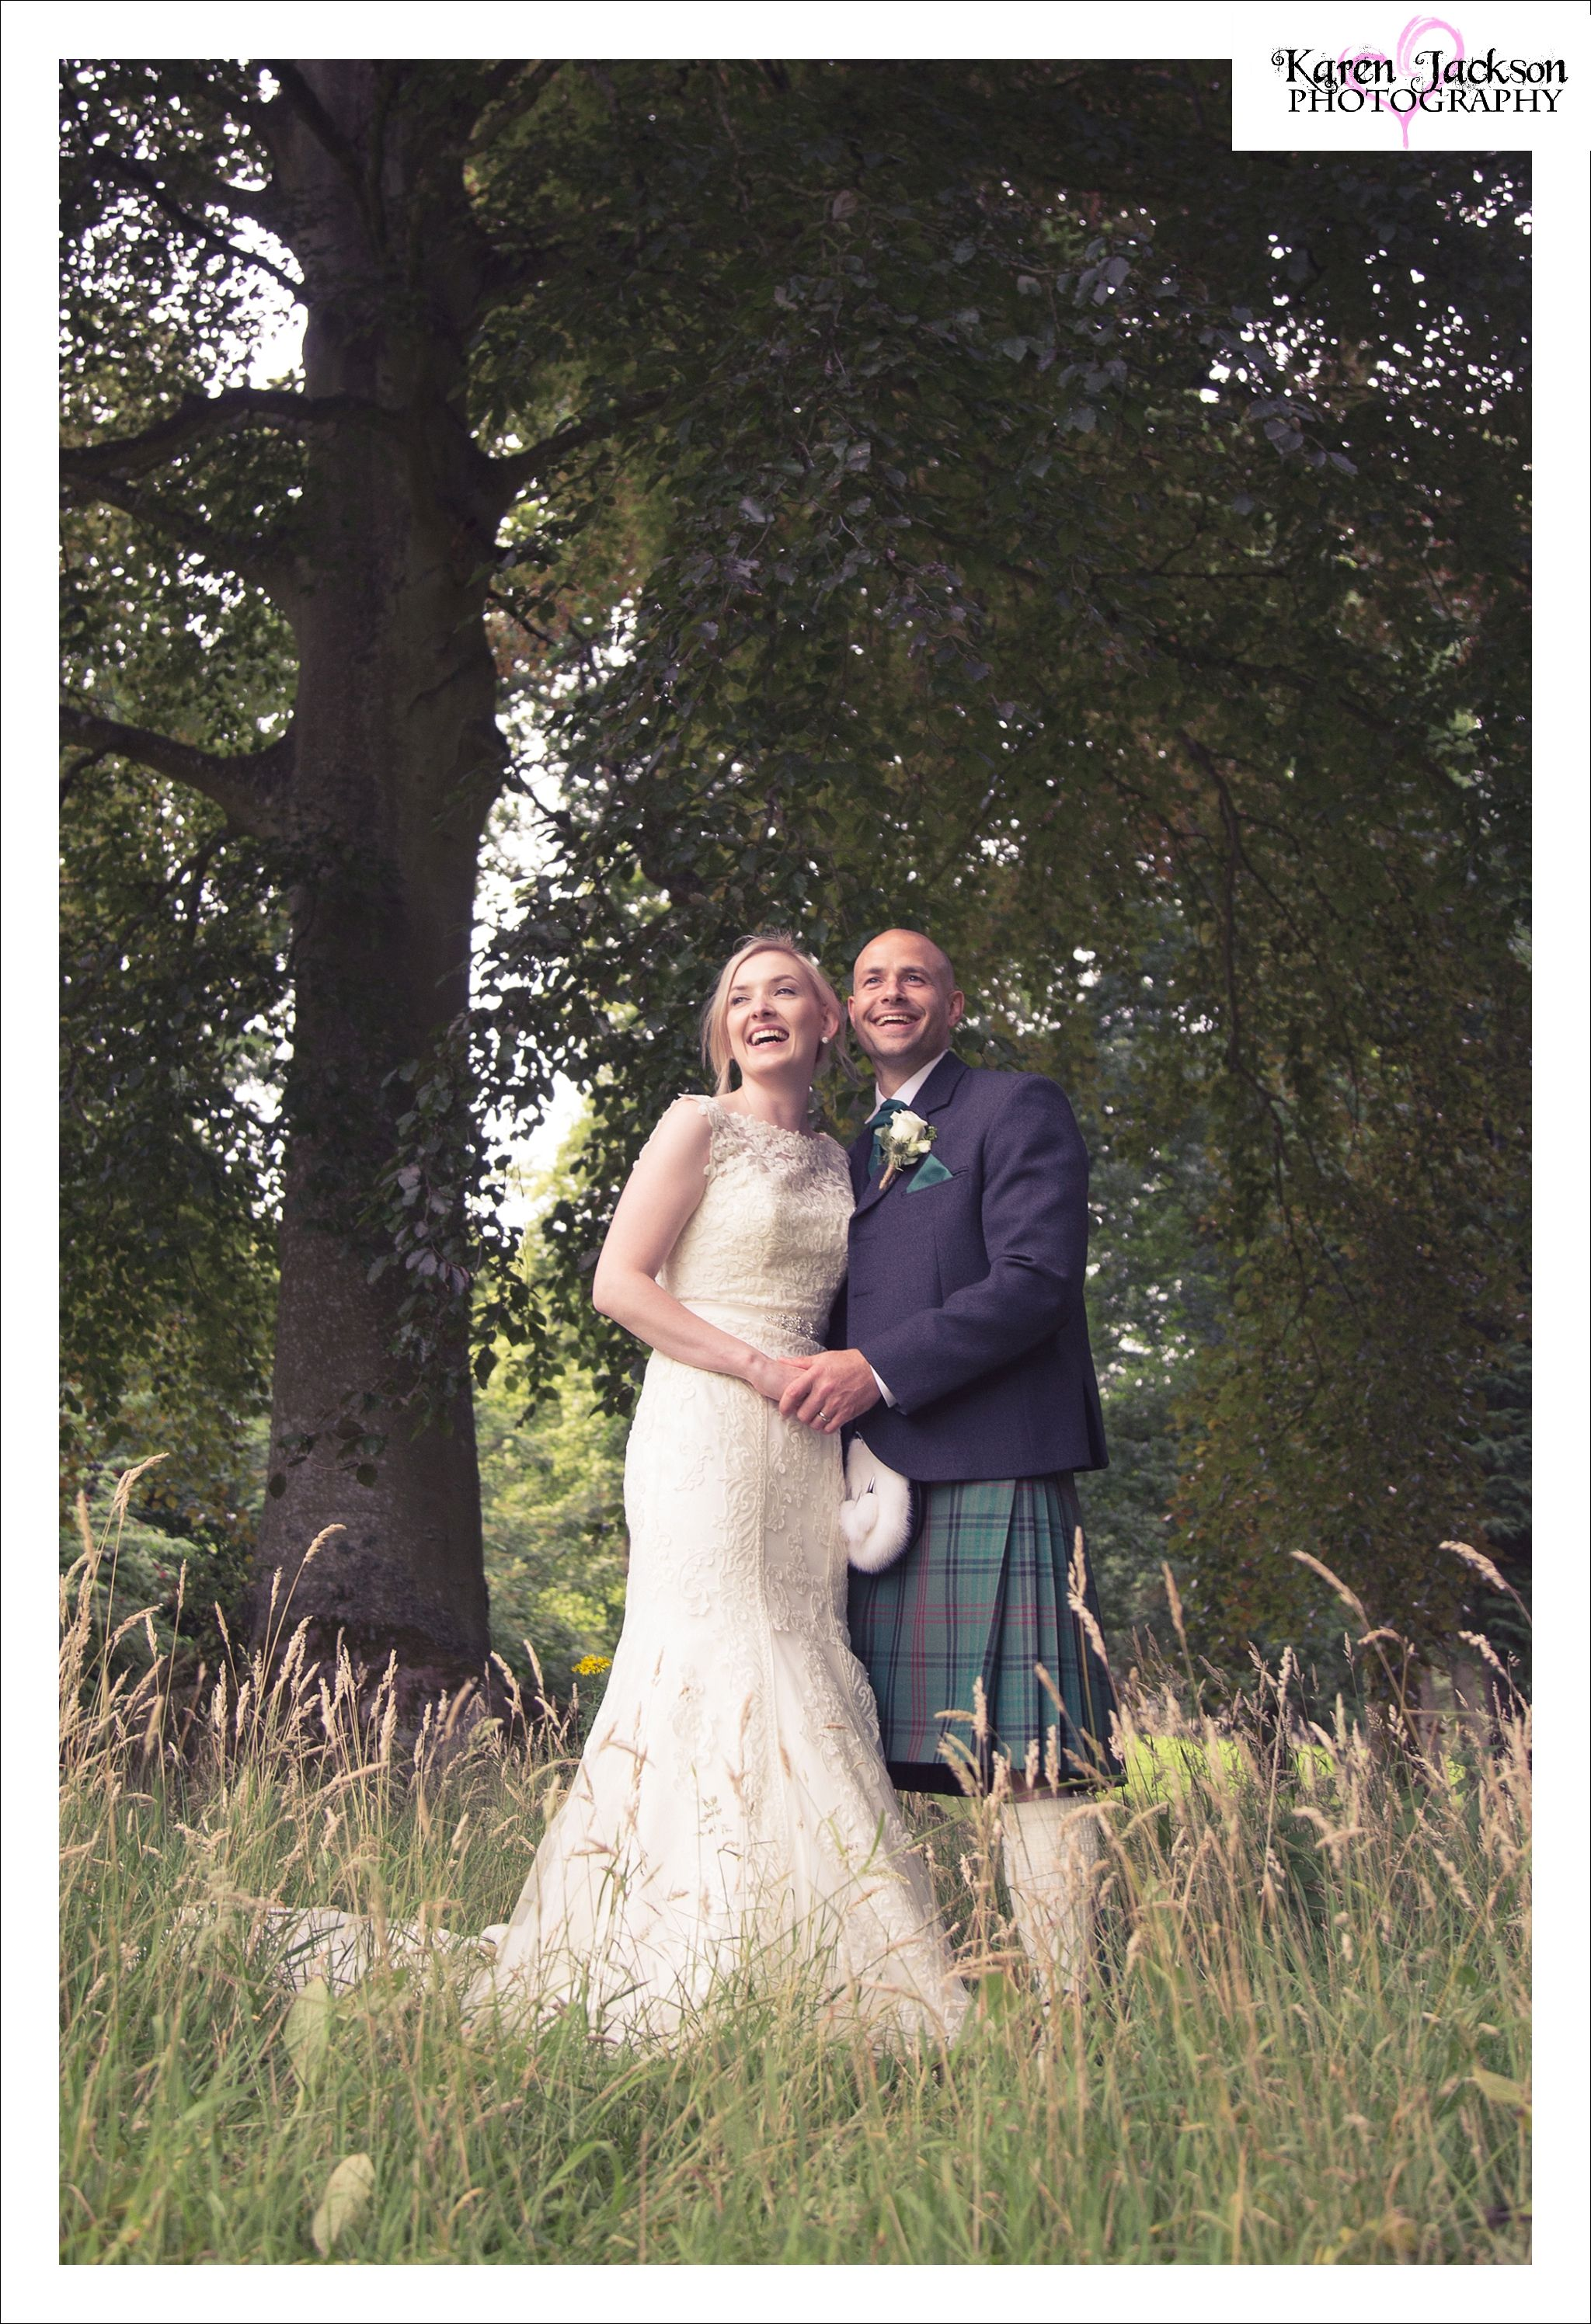 Fingask Castle Wedding Photography Perthshire Scotland Photographer Dundee Karen Jackson Natural Candid Black And White